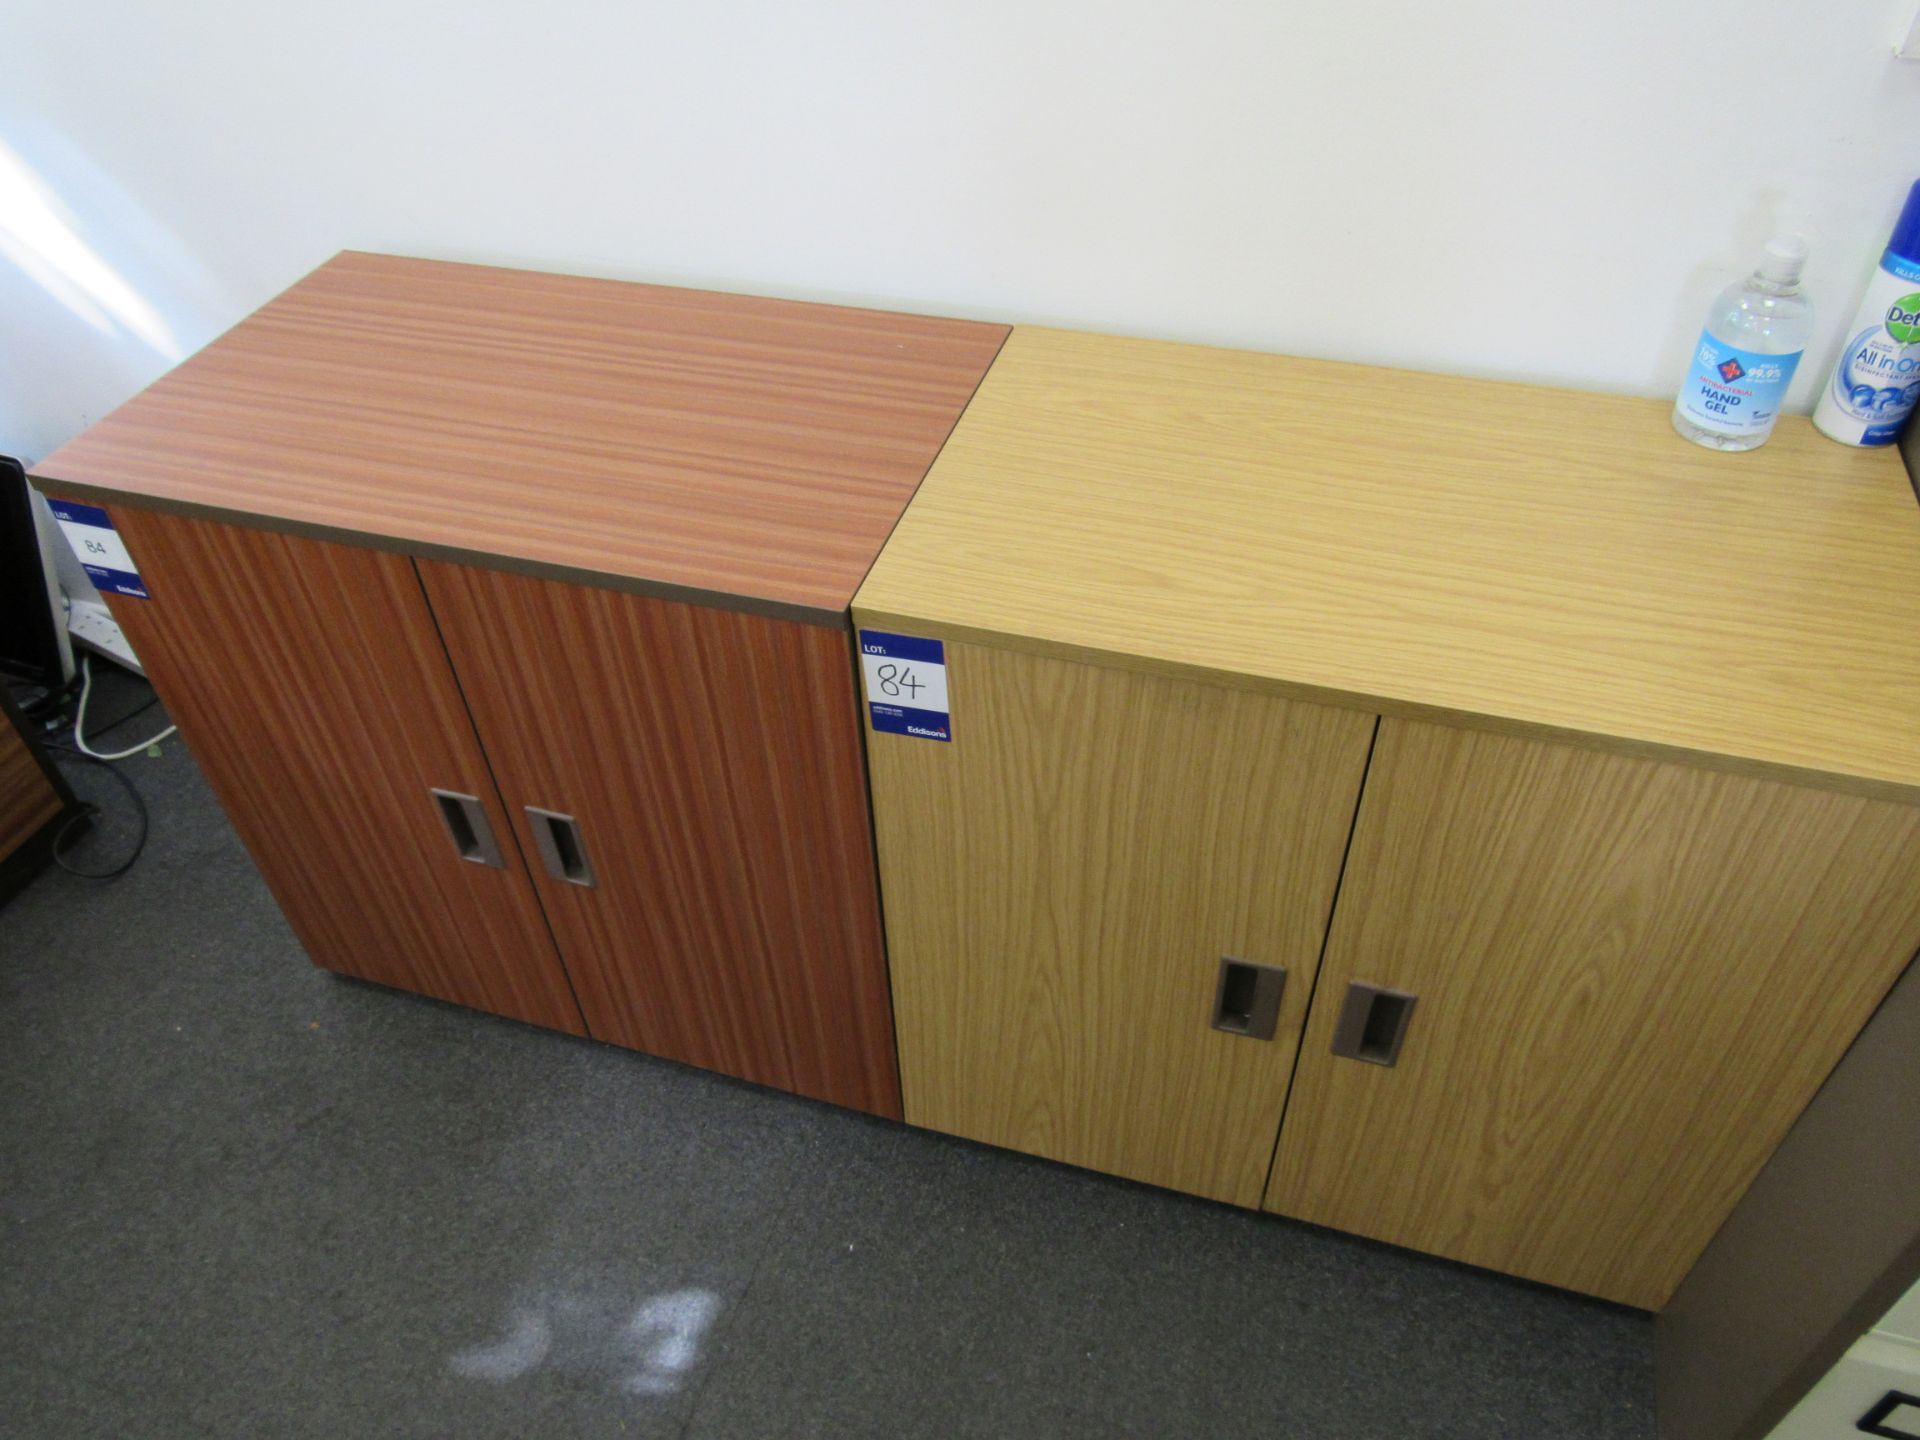 4 x Assorted low level double door cupboards (Approximately 750 x 710 x 450), to first floor office